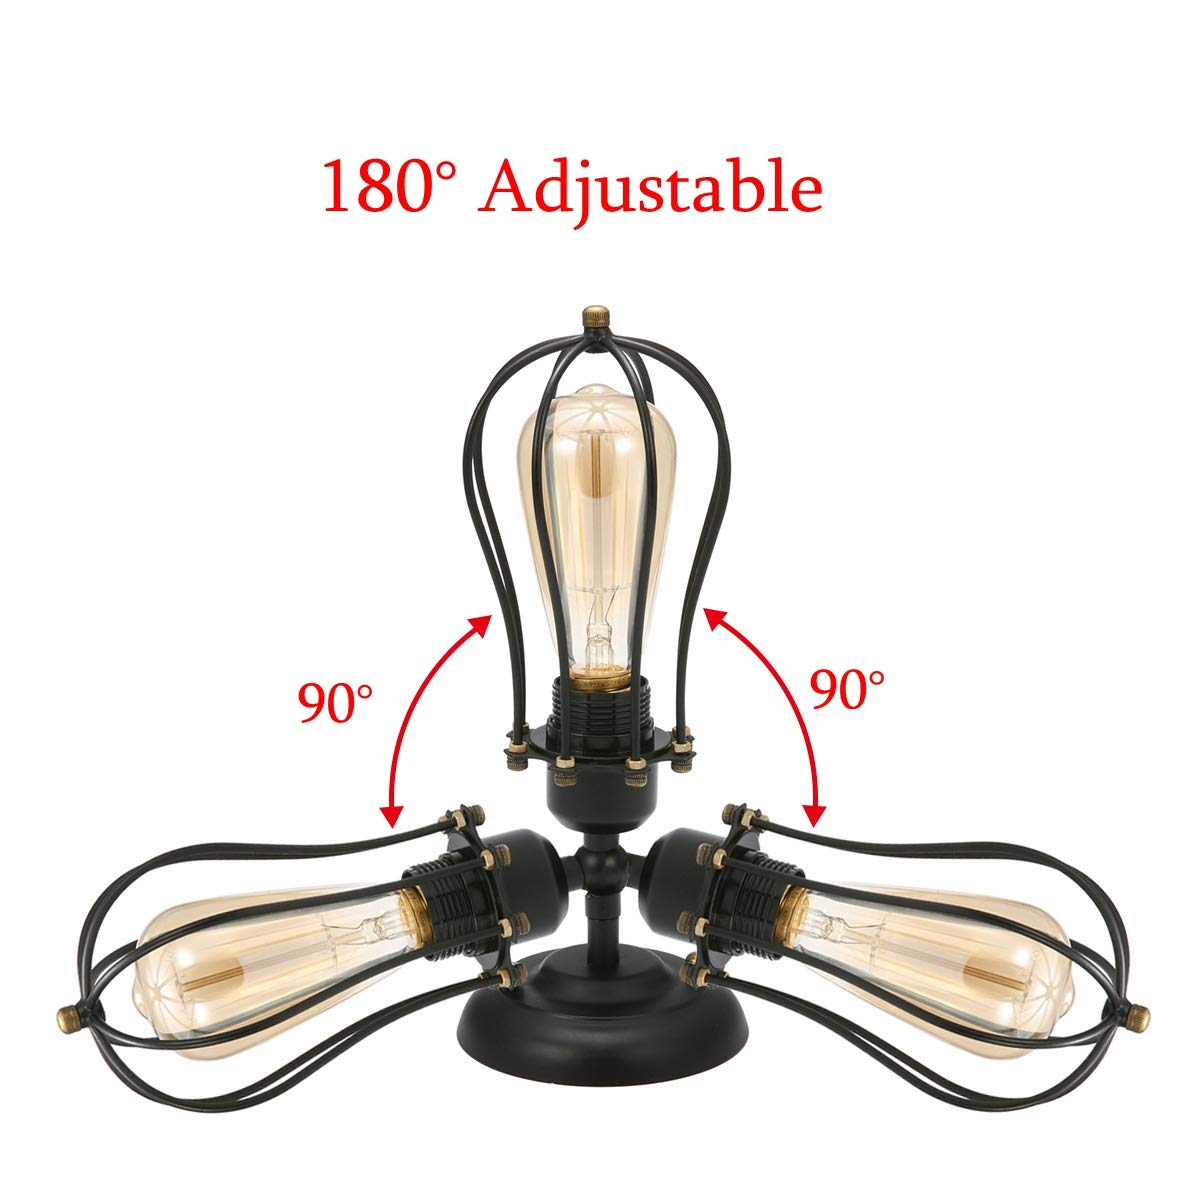 Louvra Industrial Wall Light Socket Rustic Wire Metal Cage Vintage Wall Lights Black Iron Vintage Adjustable Wall Lamp for Kitchen Warehouse Bar Club Single Lamp-Base, Black Painted